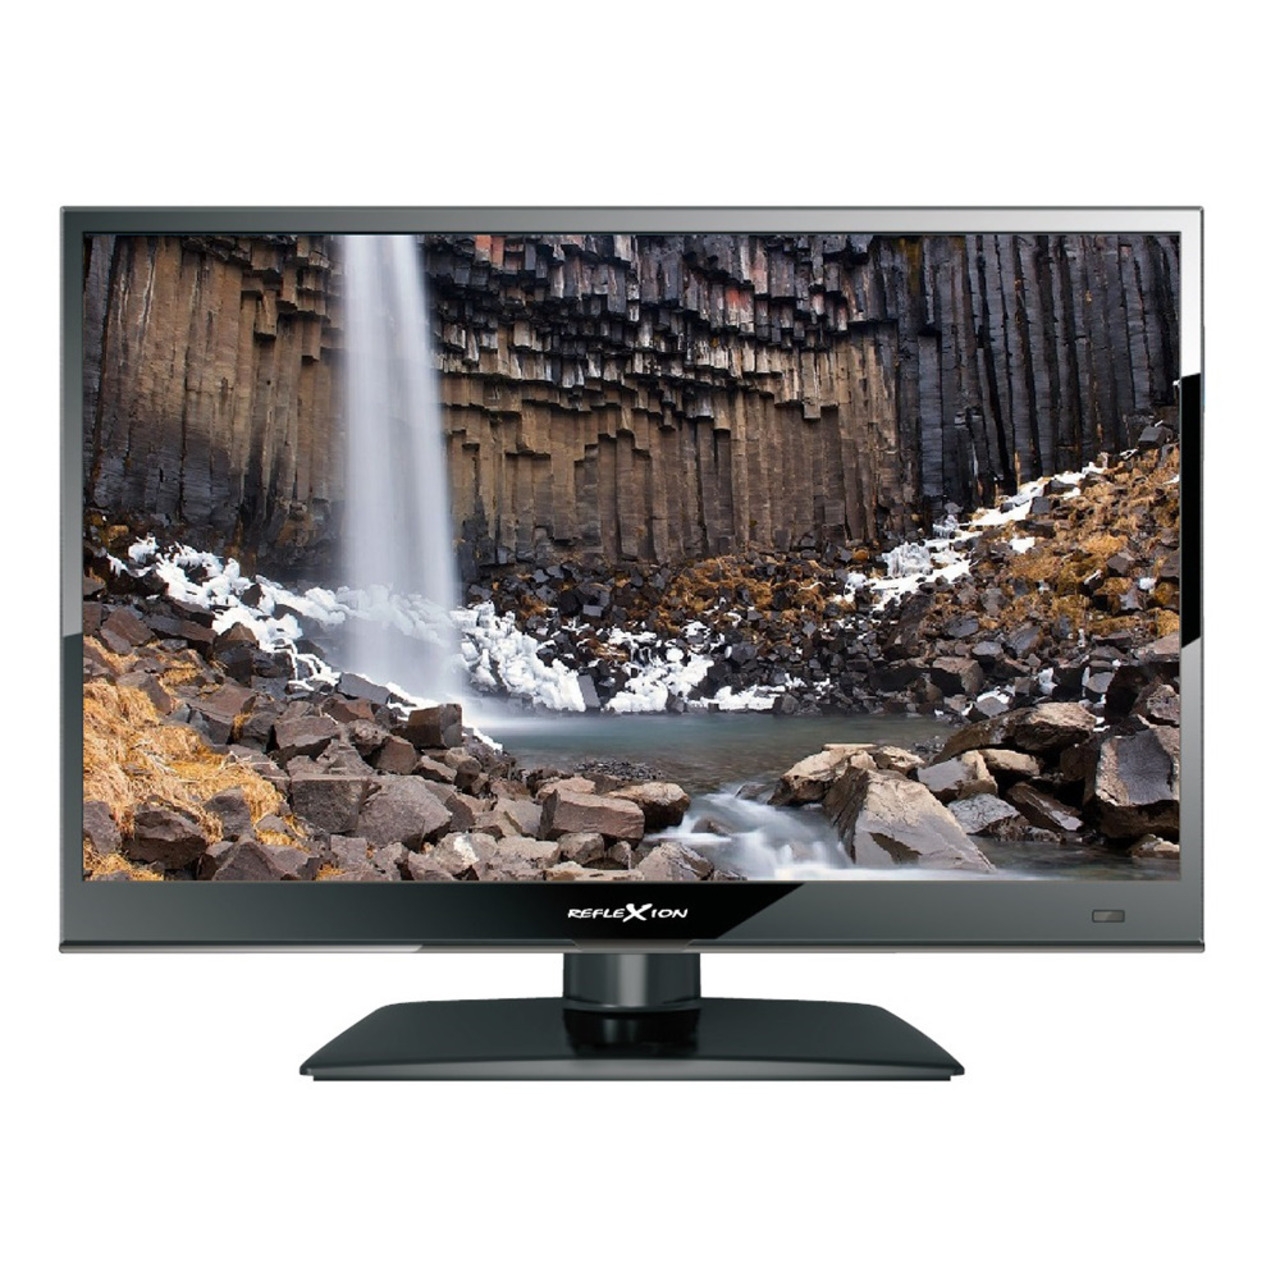 Reflexion 4-in-1-LED-TV LED1671- 40 cm (15-6)- DVB-S-S2-C-T-T2- H-265-HEVC- Full HD- 12-V-Anschluss